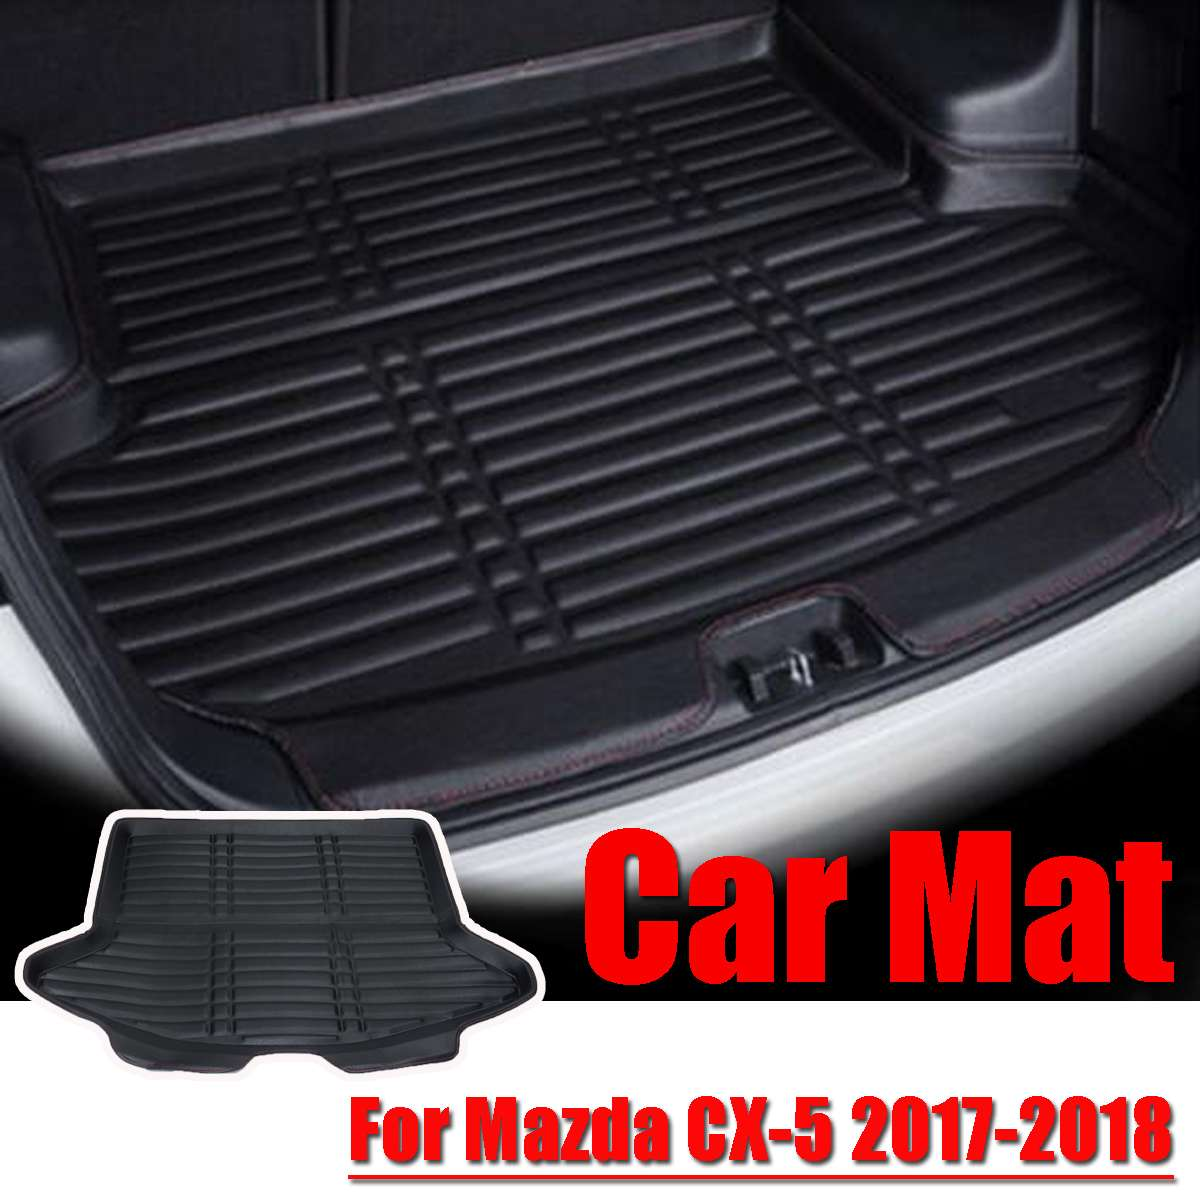 Boot Mat Rear Trunk Liner Cargo Floor Tray Carpet Mud Pad Kick Guard Protector For Mazda CX-5 CX5 2017 2018 Car Styling